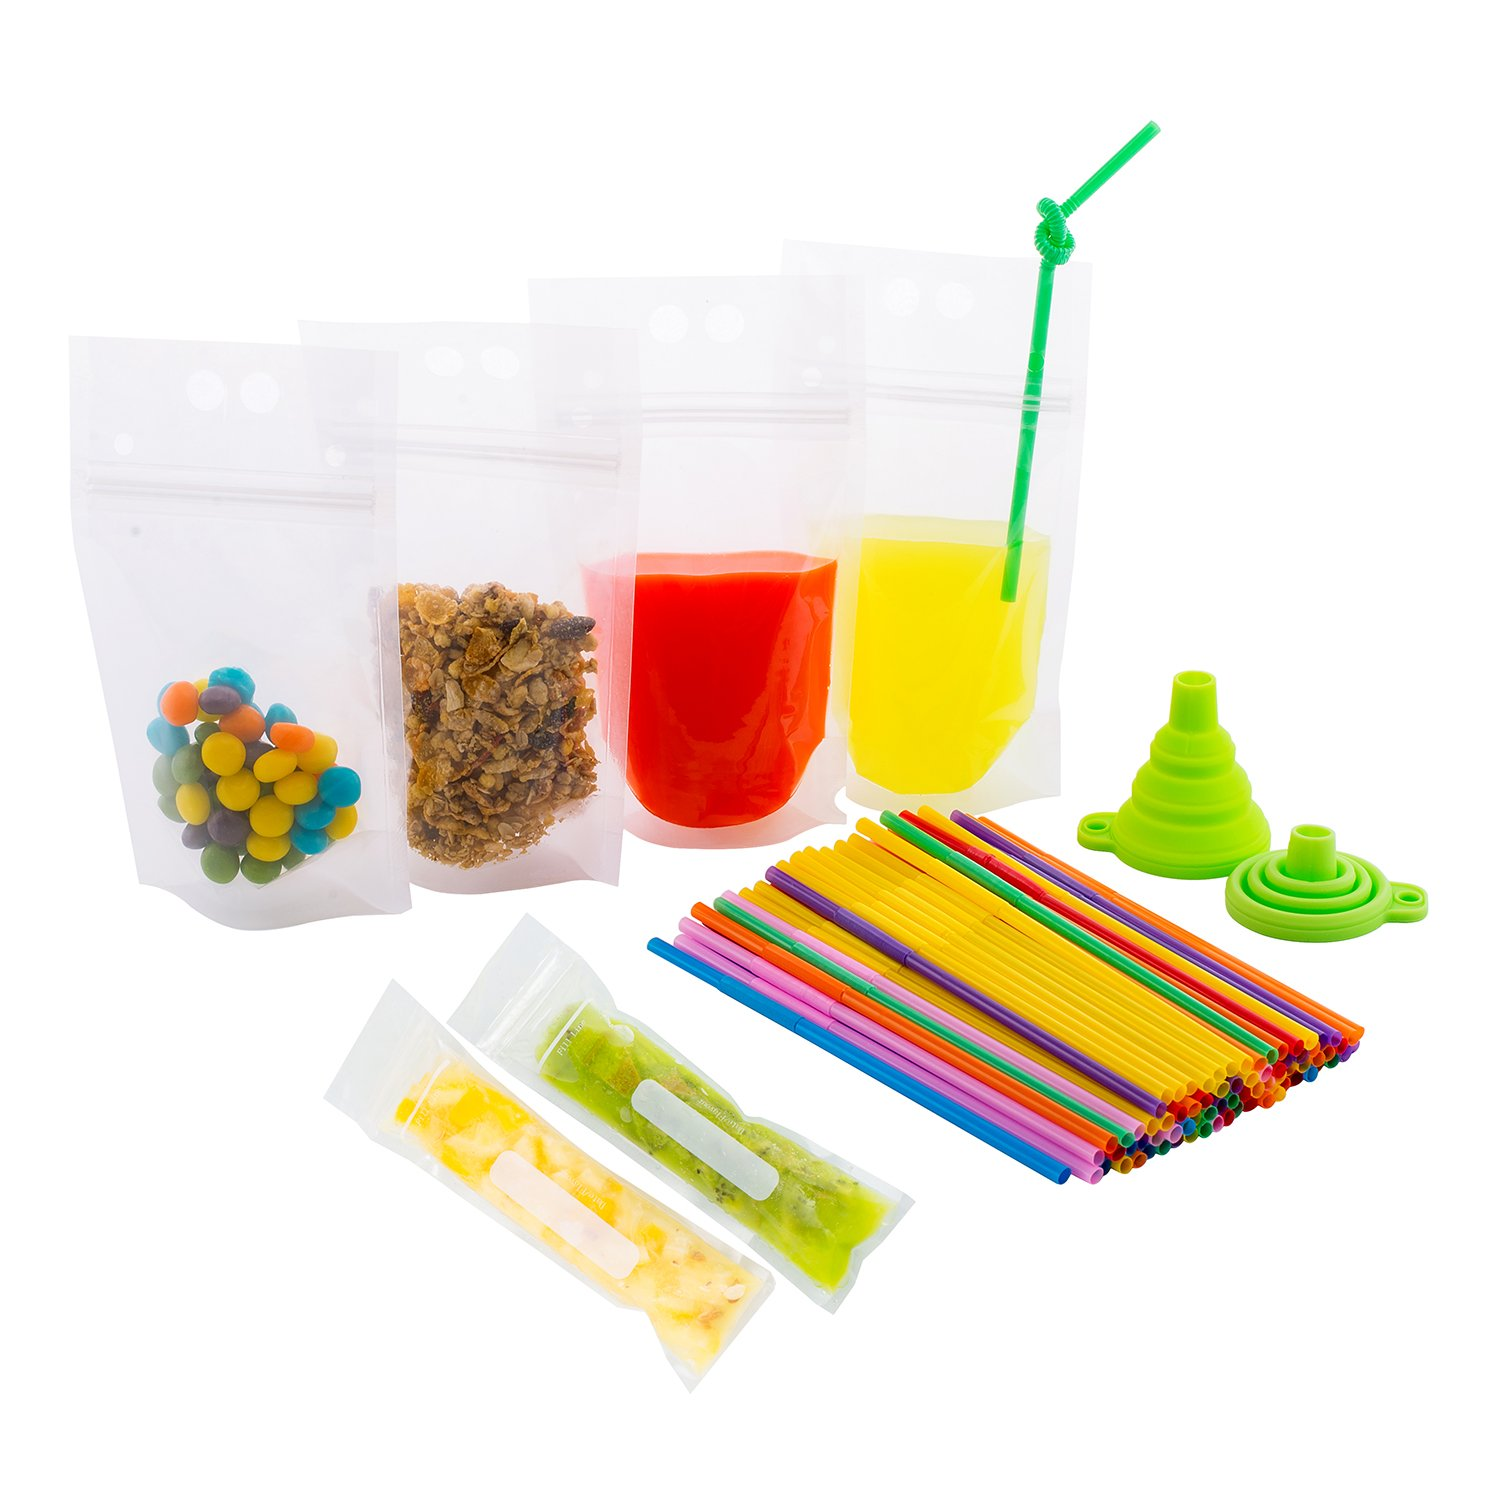 200 Pcs Reusable Drink Pouches with Double Zipper for Smoothie - Long Plastic Straws and Popsicle Mold Bags and 1 Silicone Funnel | Juice & Food Disposable Container | Non-Toxic, Phthalate & BPA Free